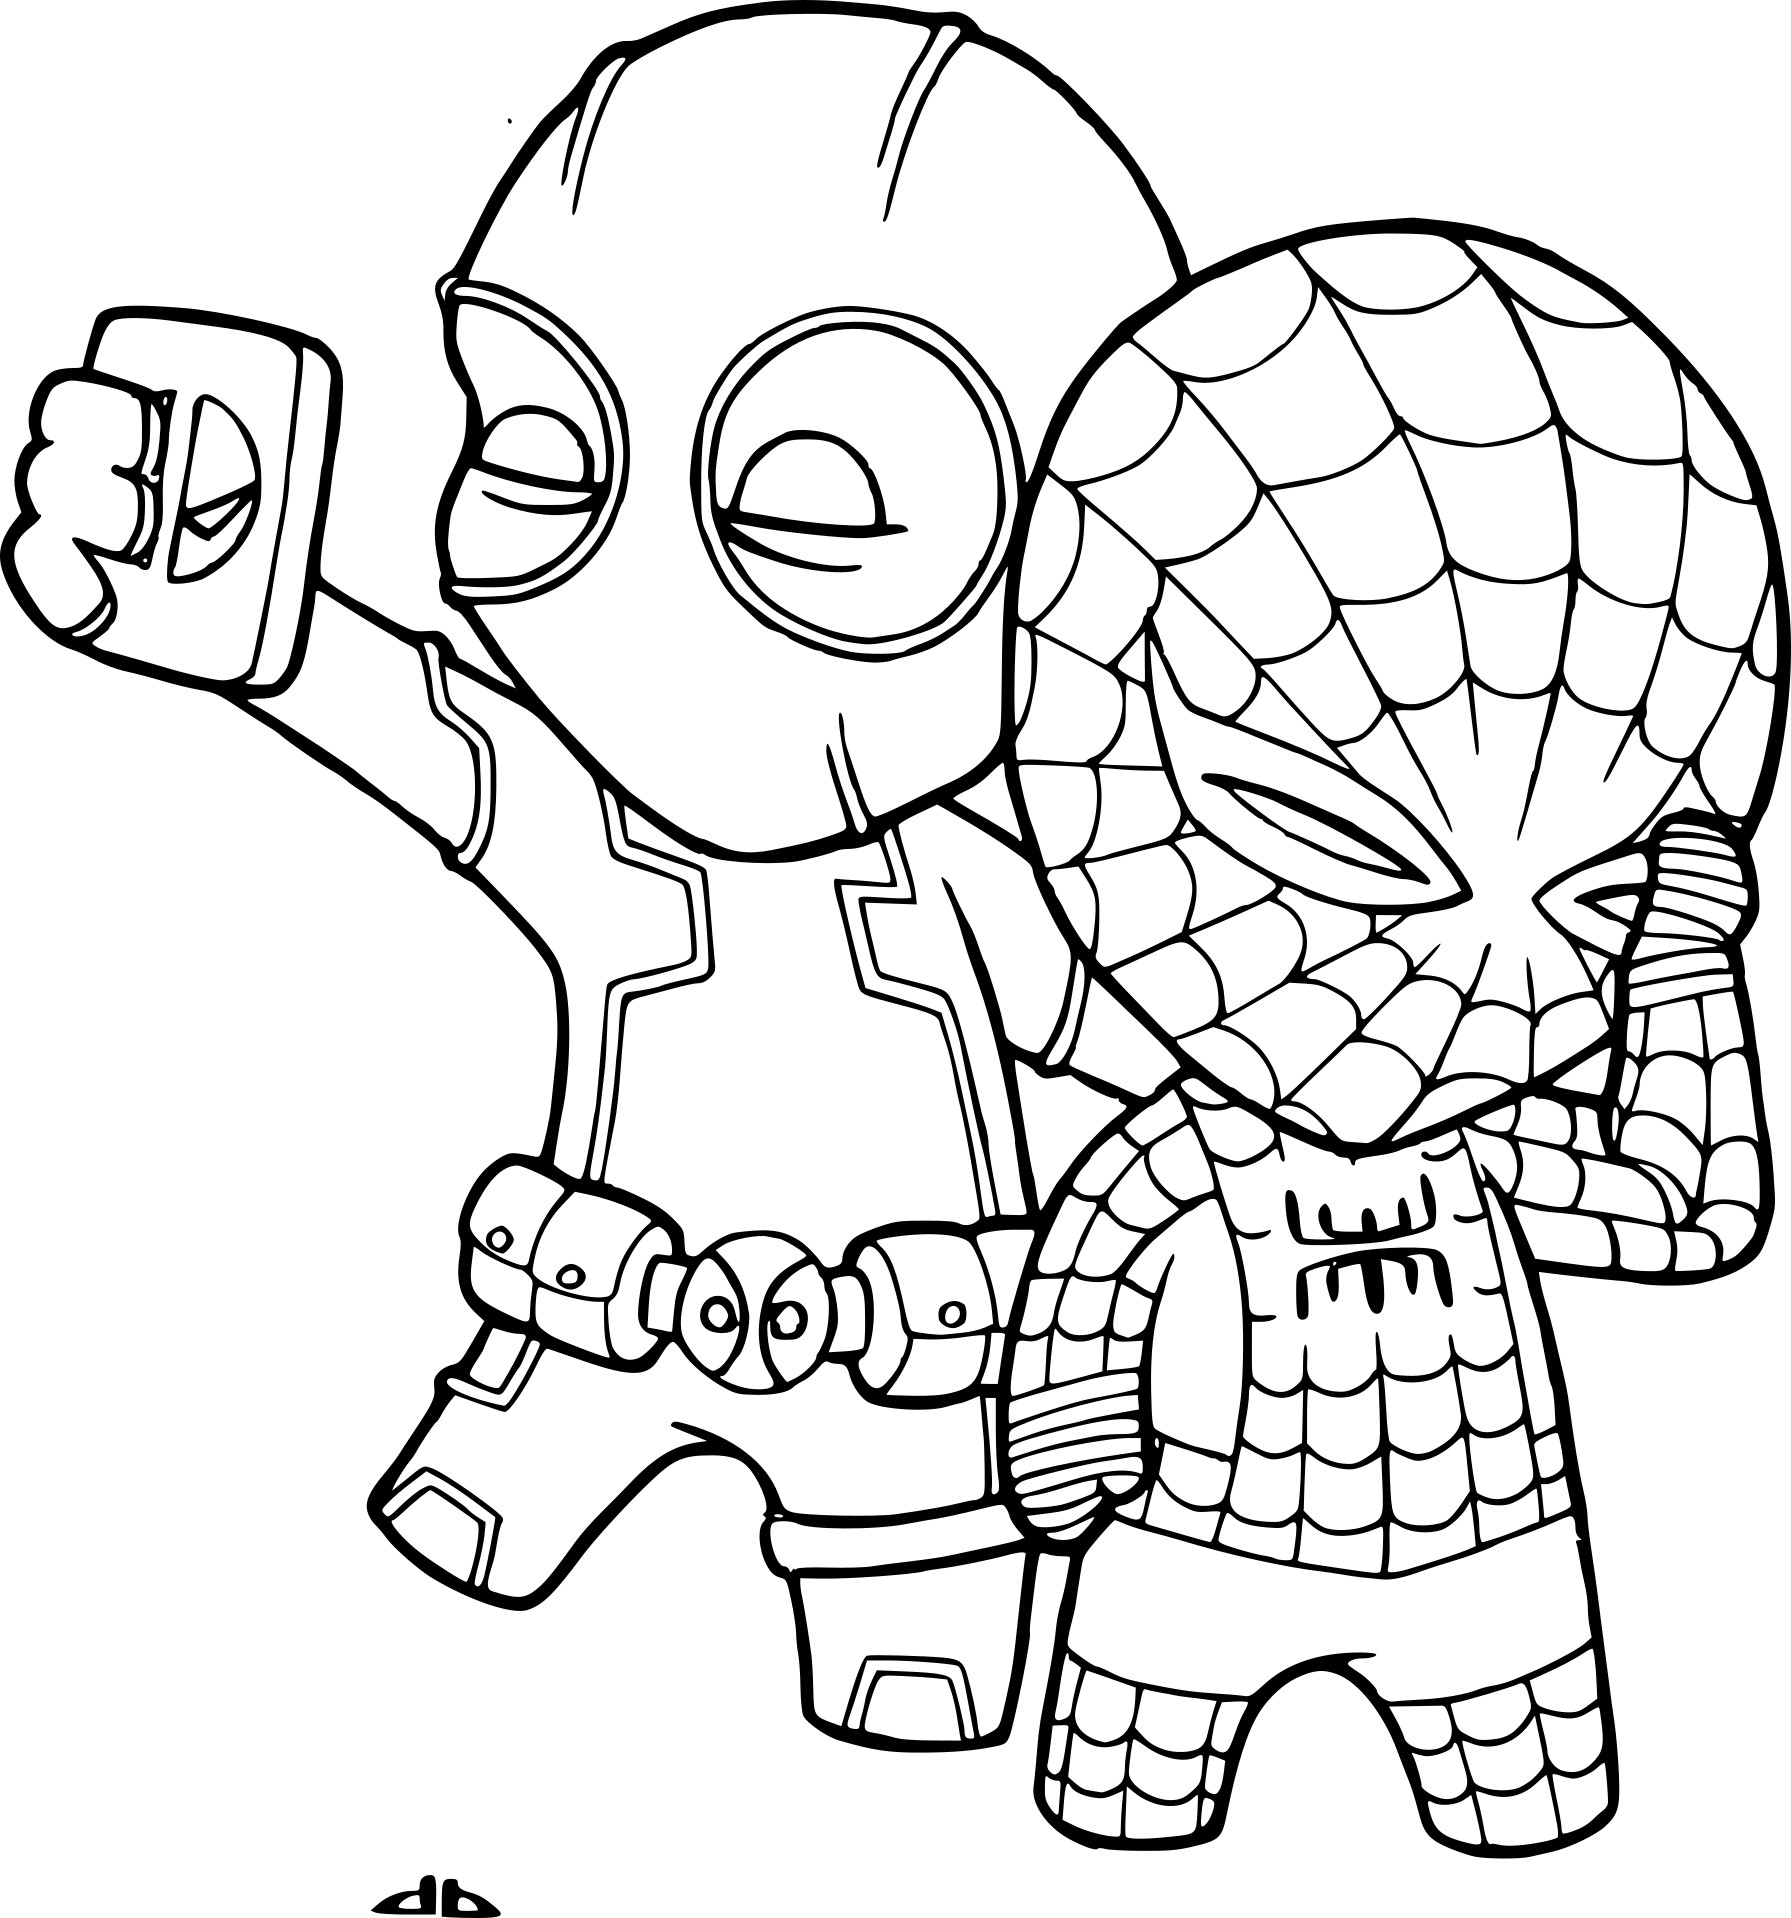 Lego Deadpool Coloring PagesDeadpool Coloring Pages Best